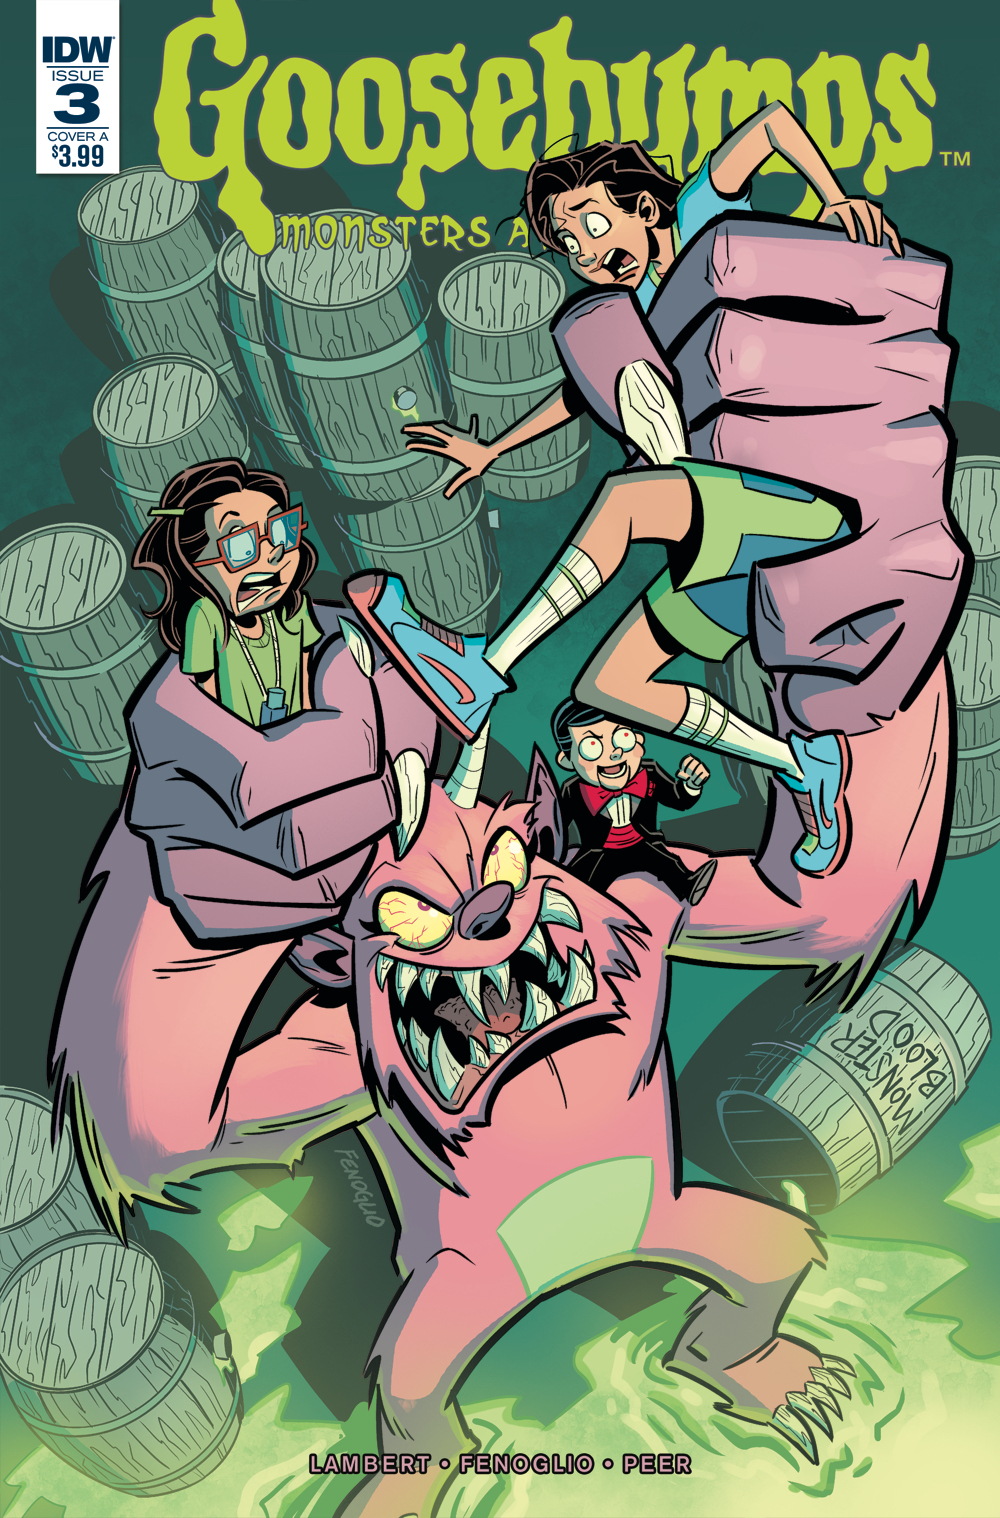 GOOSEBUMPS MONSTERS AT MIDNIGHT #3